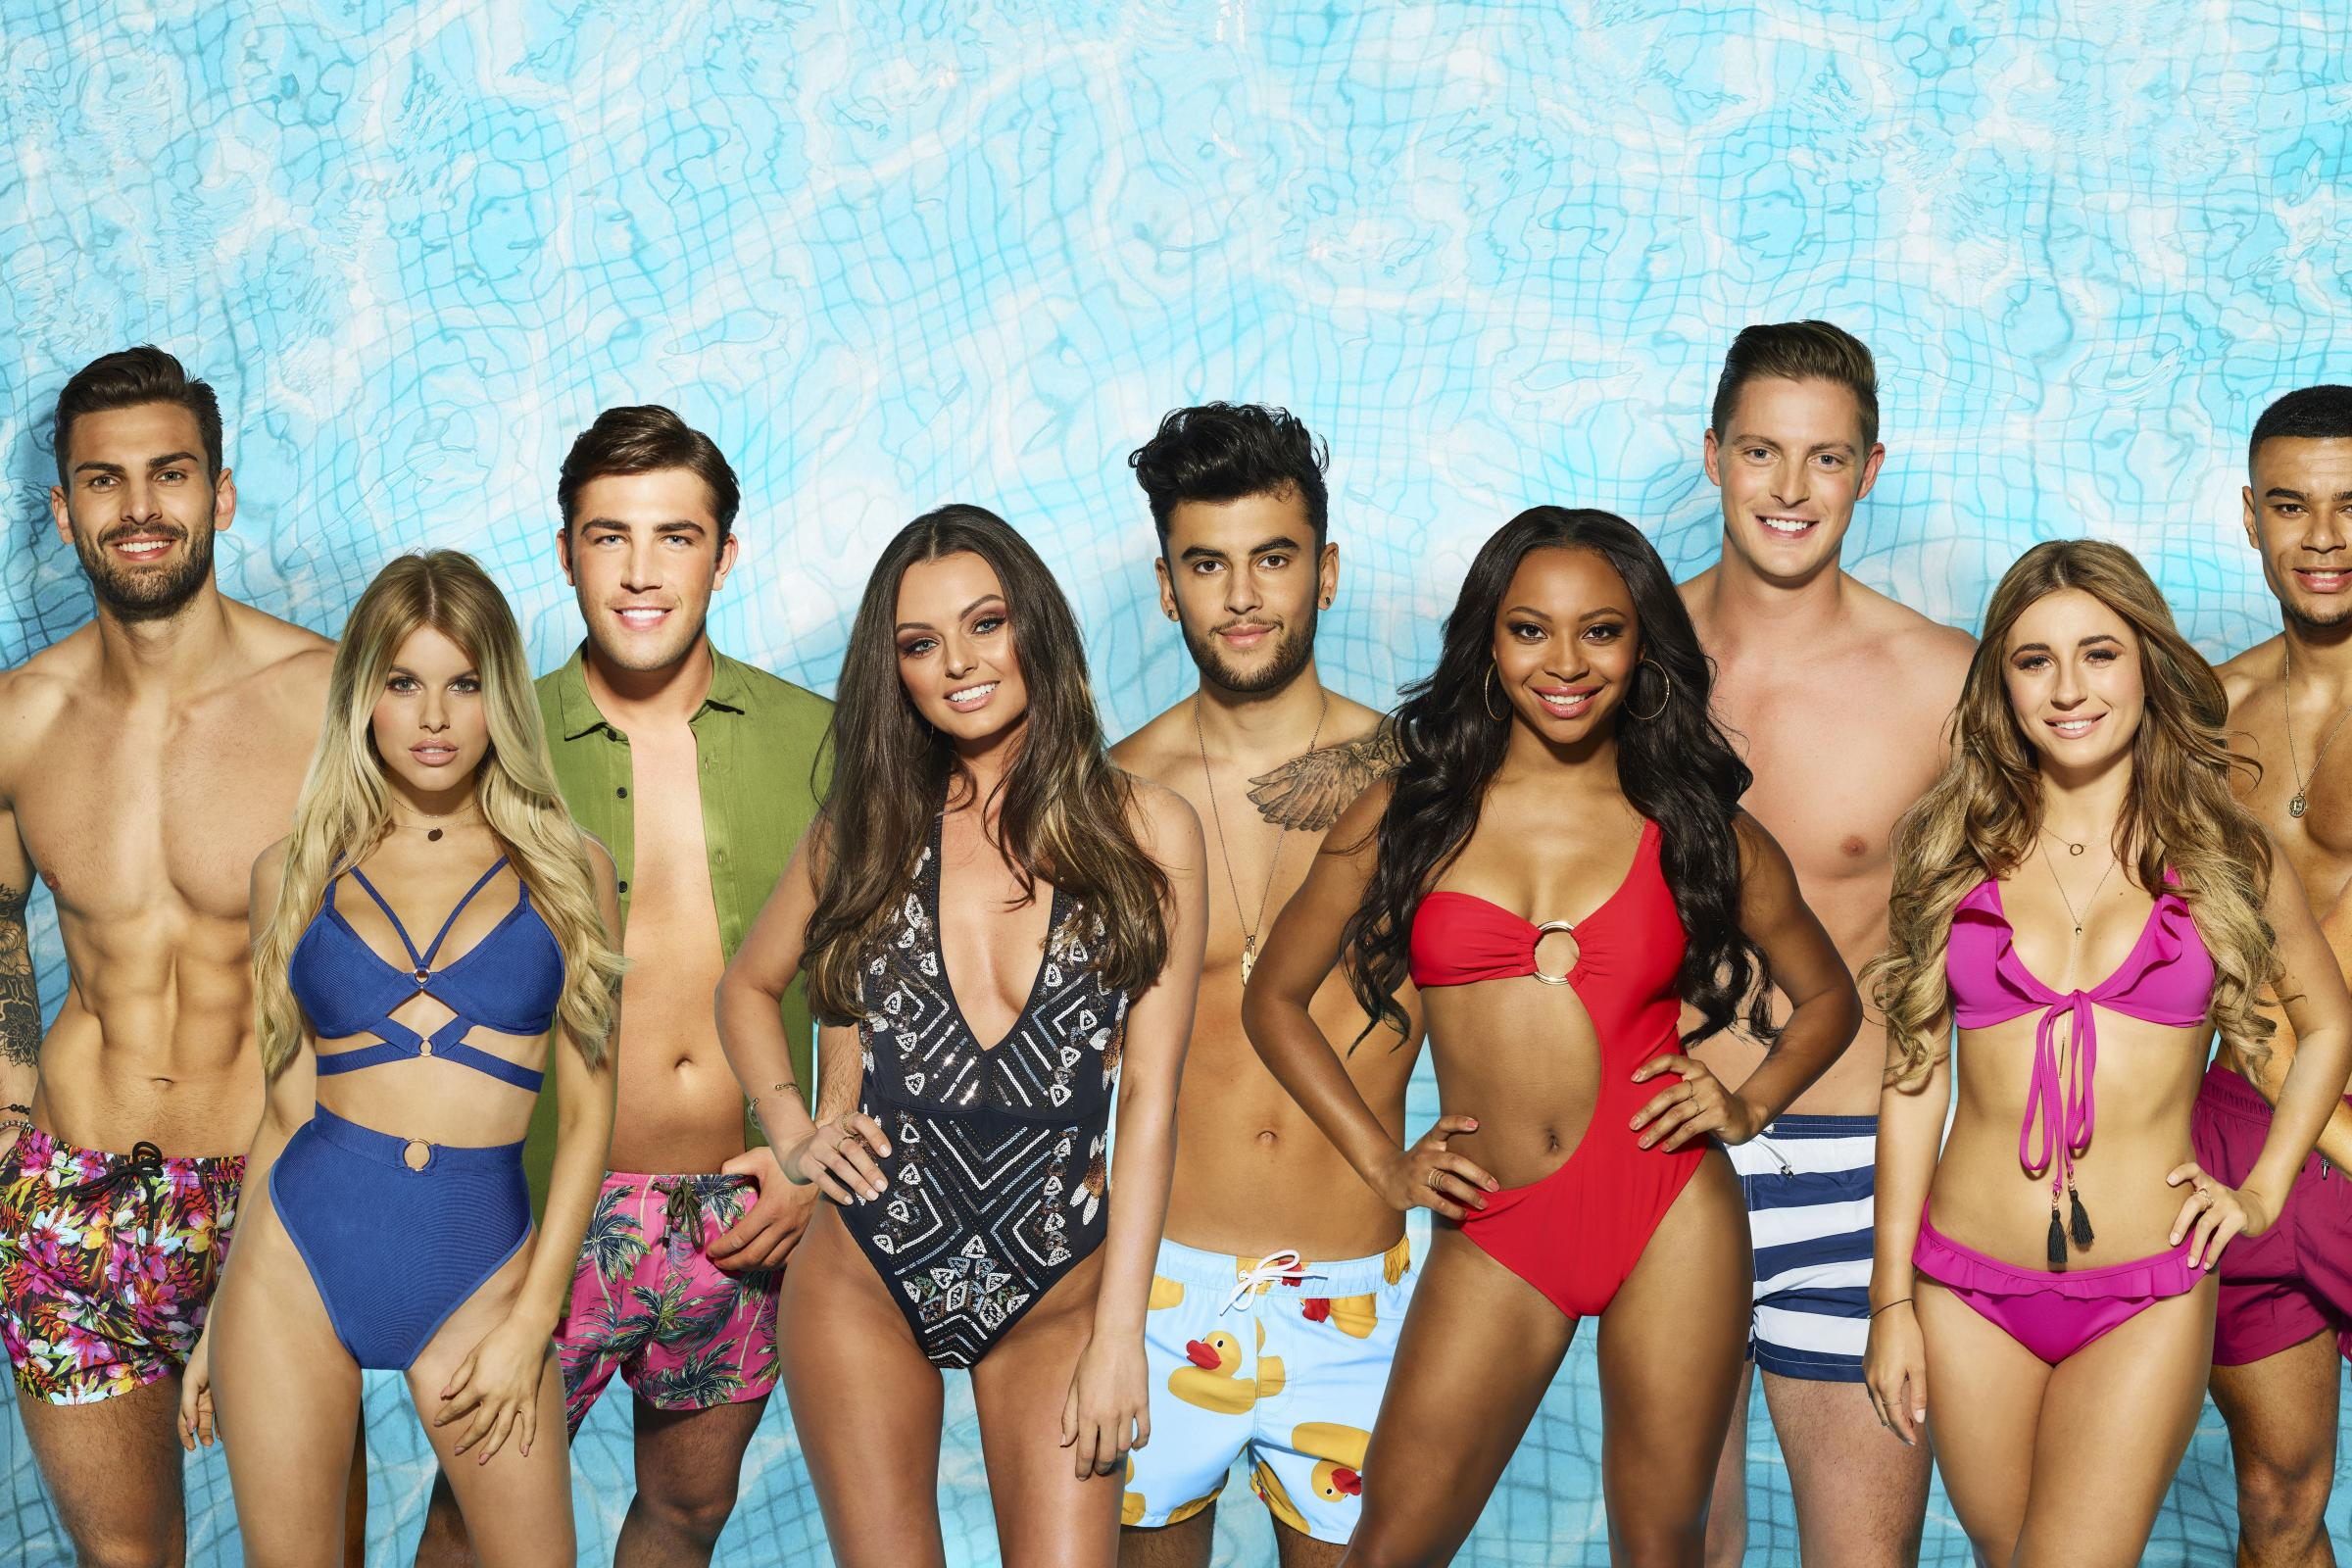 Applications are now open for Love Island 2019